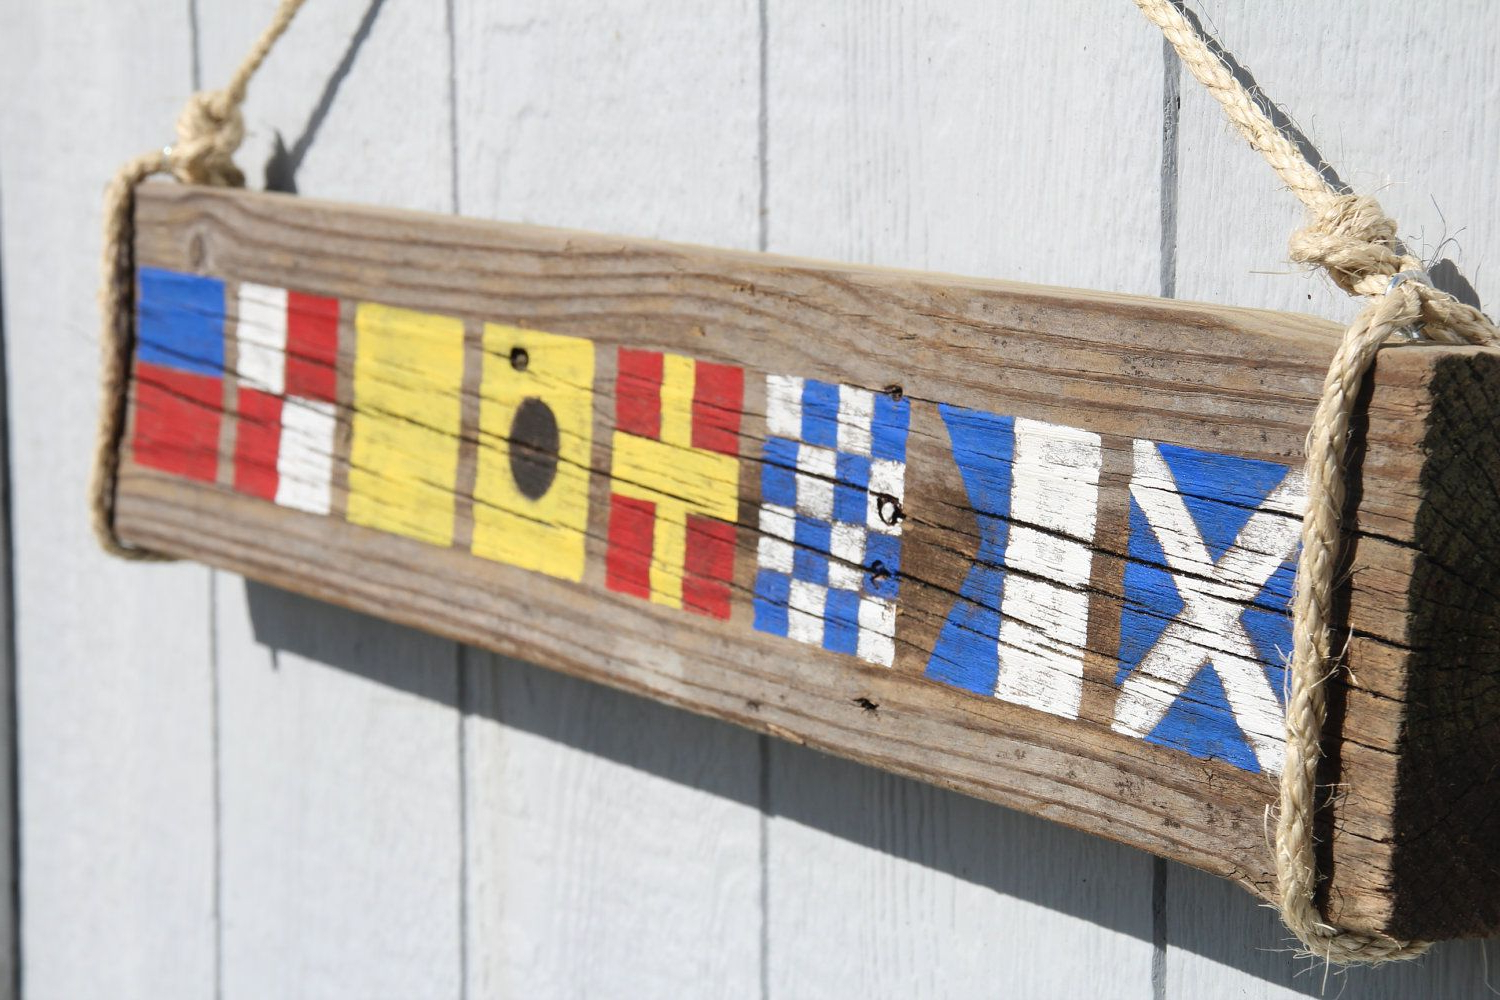 Most Current Letter Wooden Nautical Alphabet Flag Wall Décor Throughout Google Image Result For Http://img (View 14 of 20)